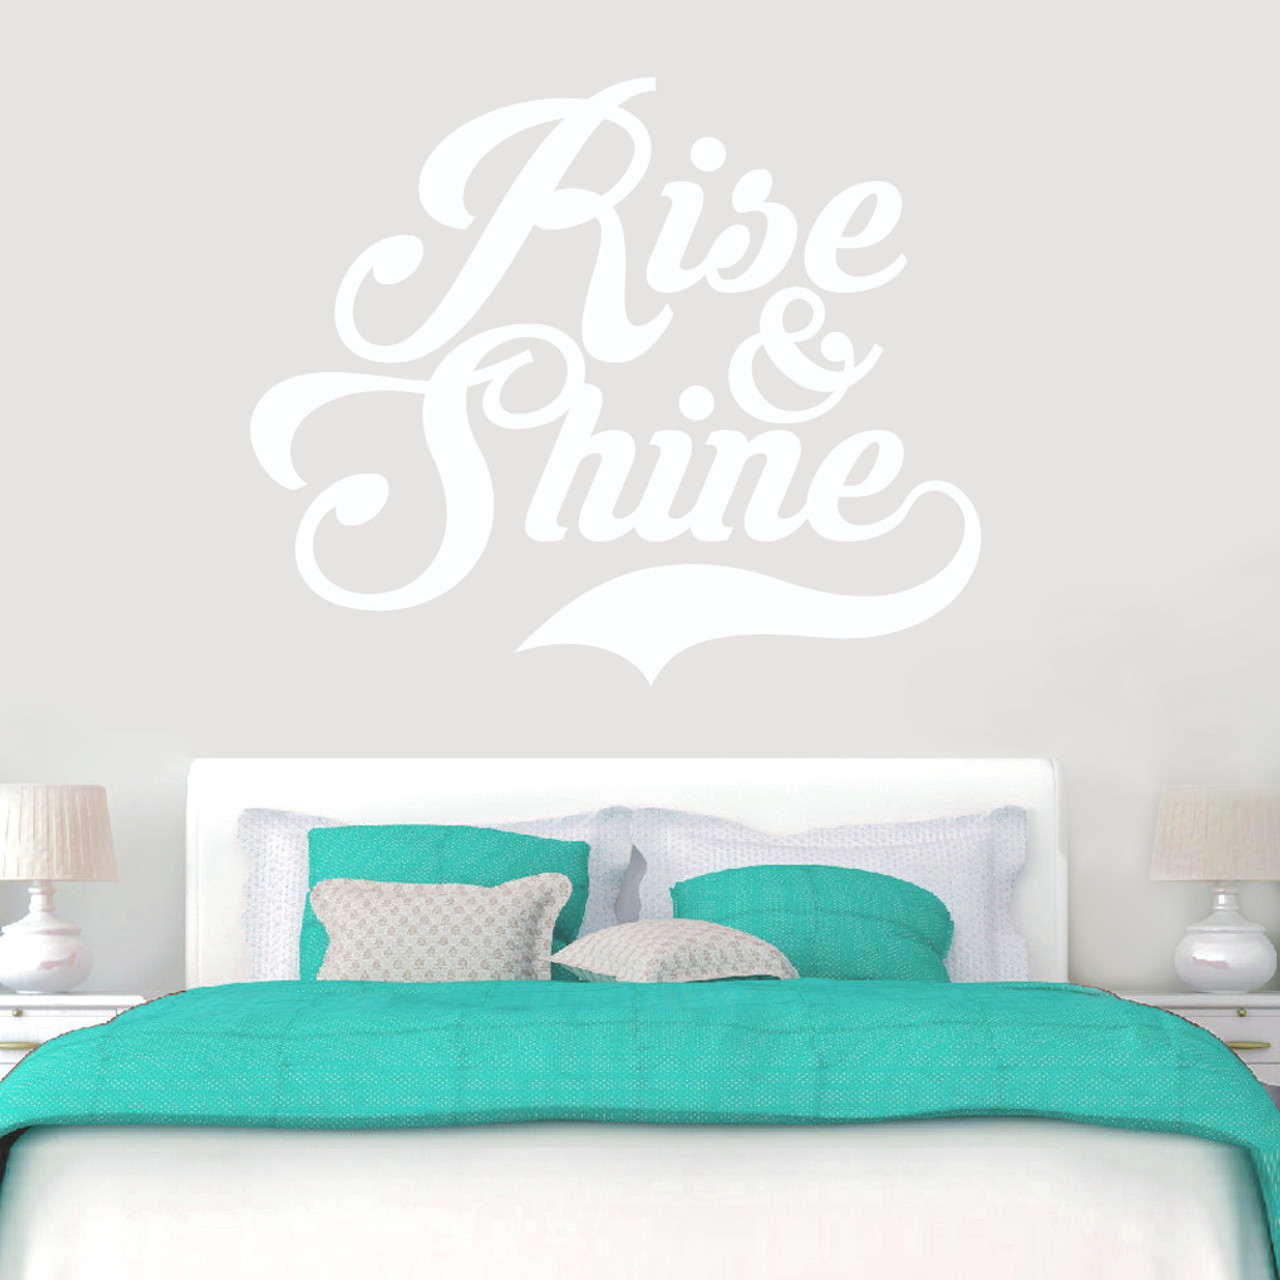 Rise Shine Wall Decal Sweetums Wall Decals Home Decor